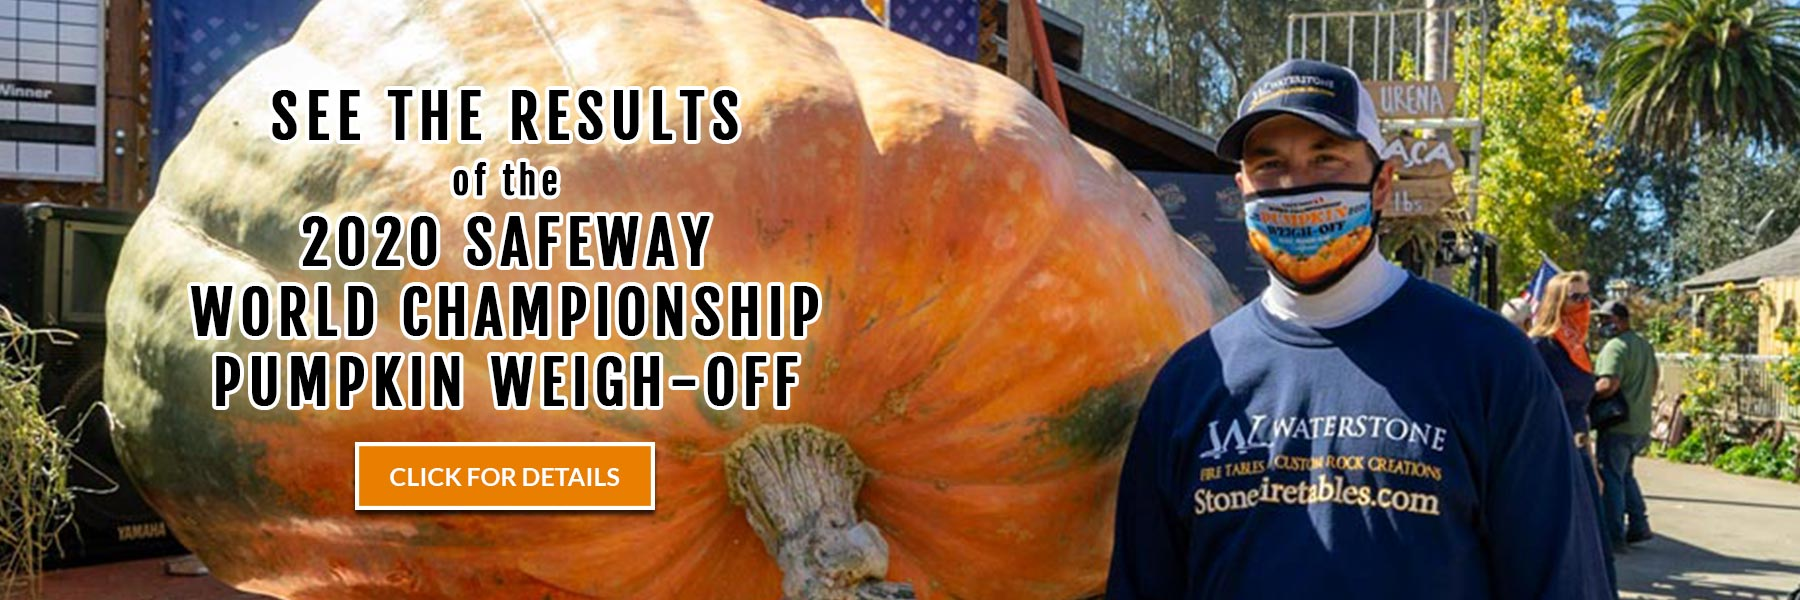 See the results of the 2020 Safeway World Championship Pumpkin Weigh-Off - click for details